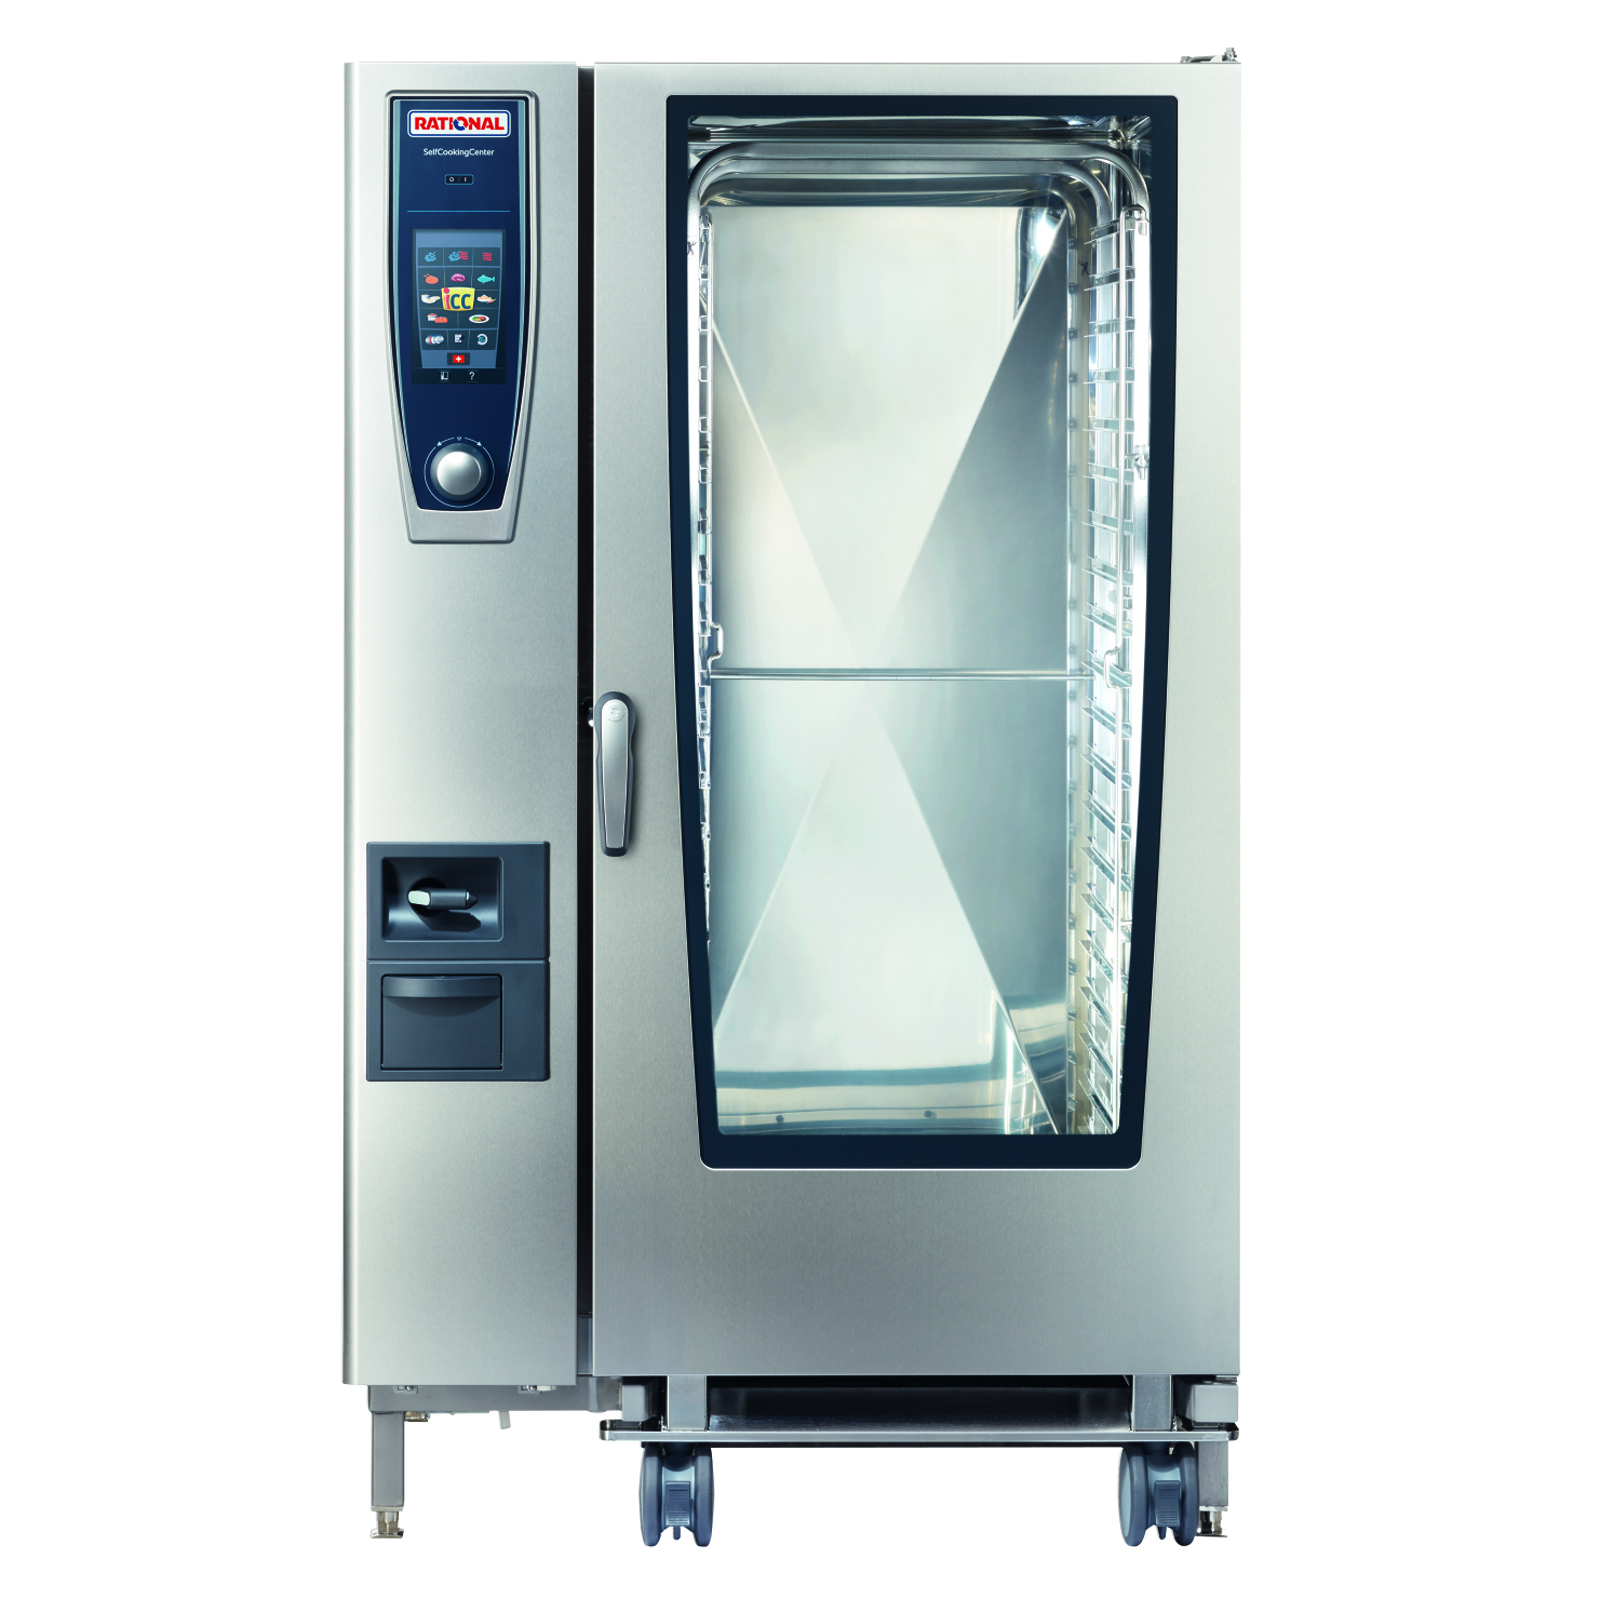 RATIONAL B228206.19D combi oven, gas